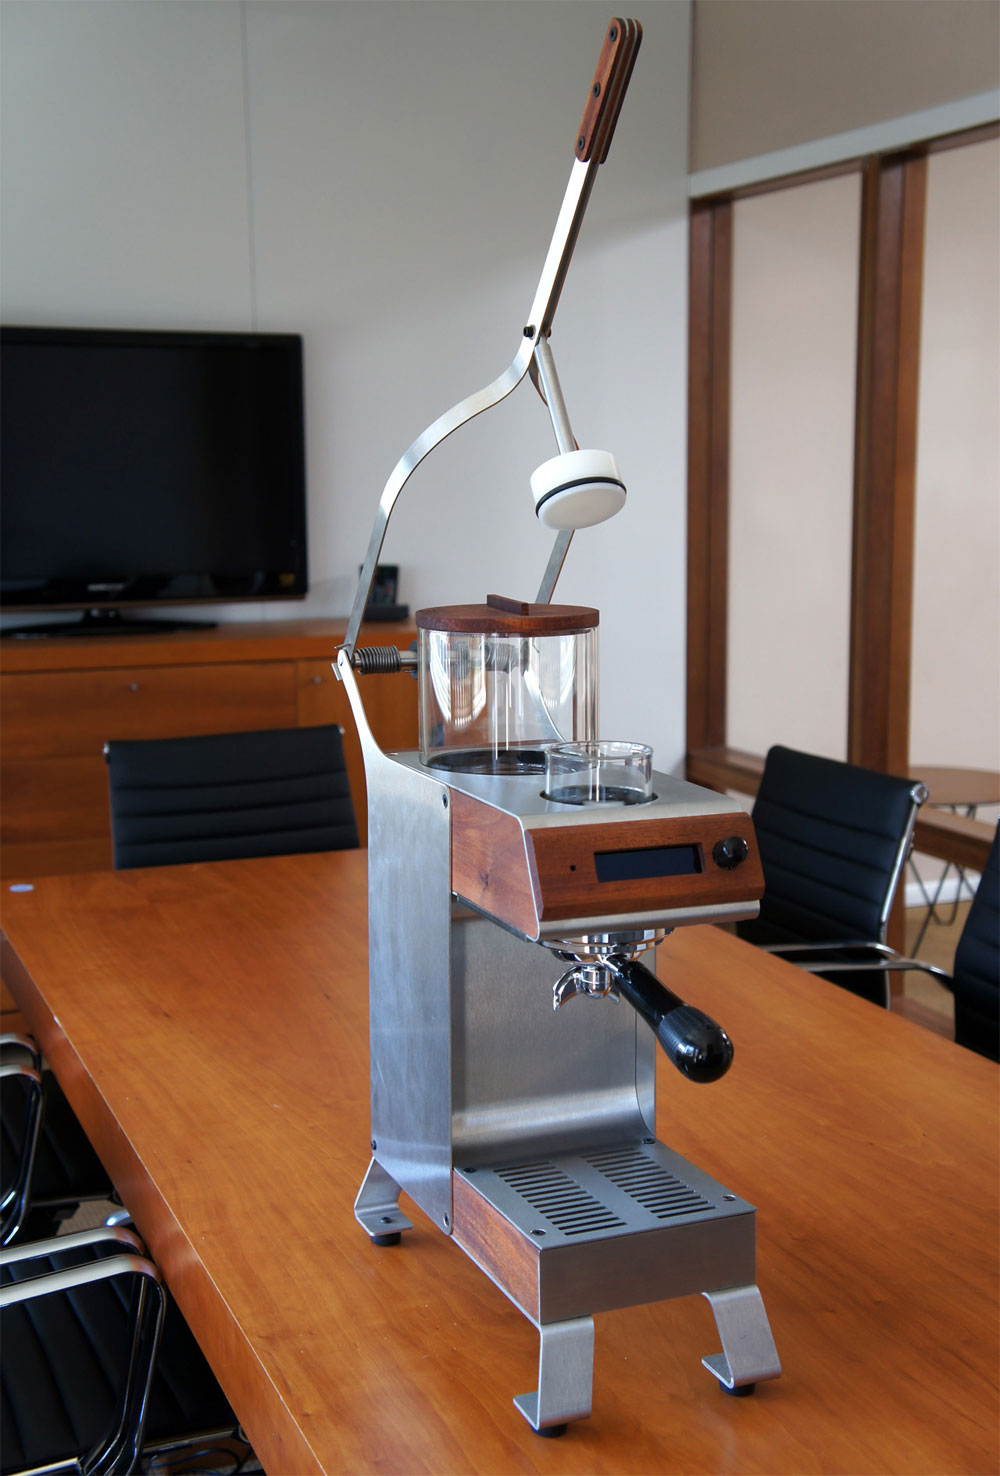 World s Most Expensive Coffee Maker - Blossom One Limited - eXtravaganzi